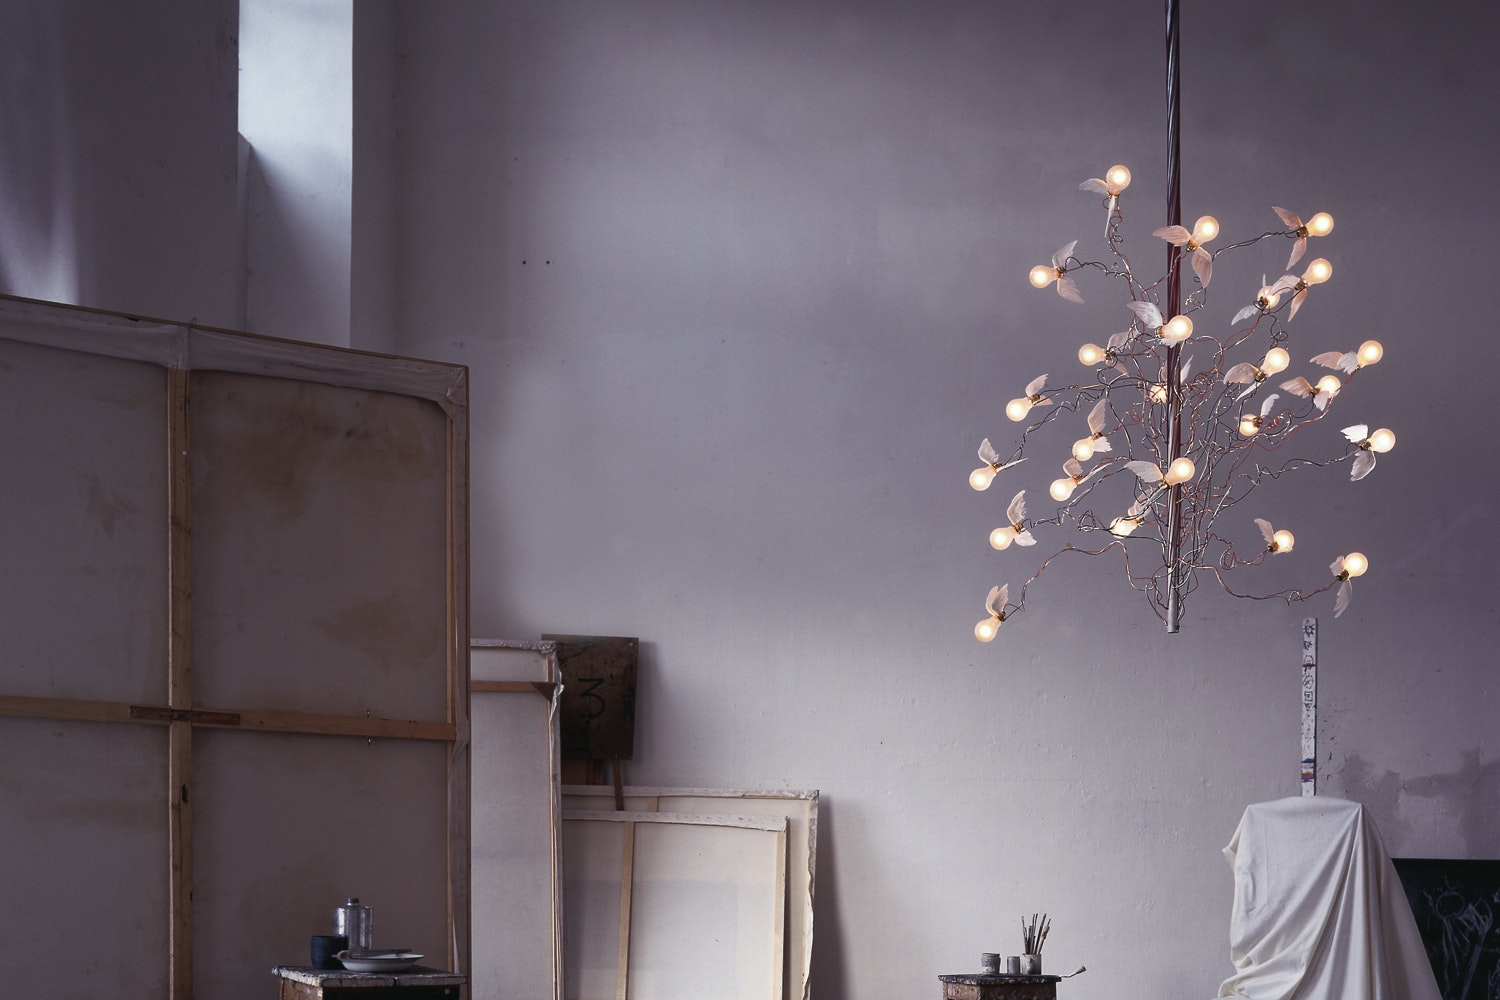 Birds Birds Birds Suspension Lamp by Ingo Maurer for Ingo Maurer